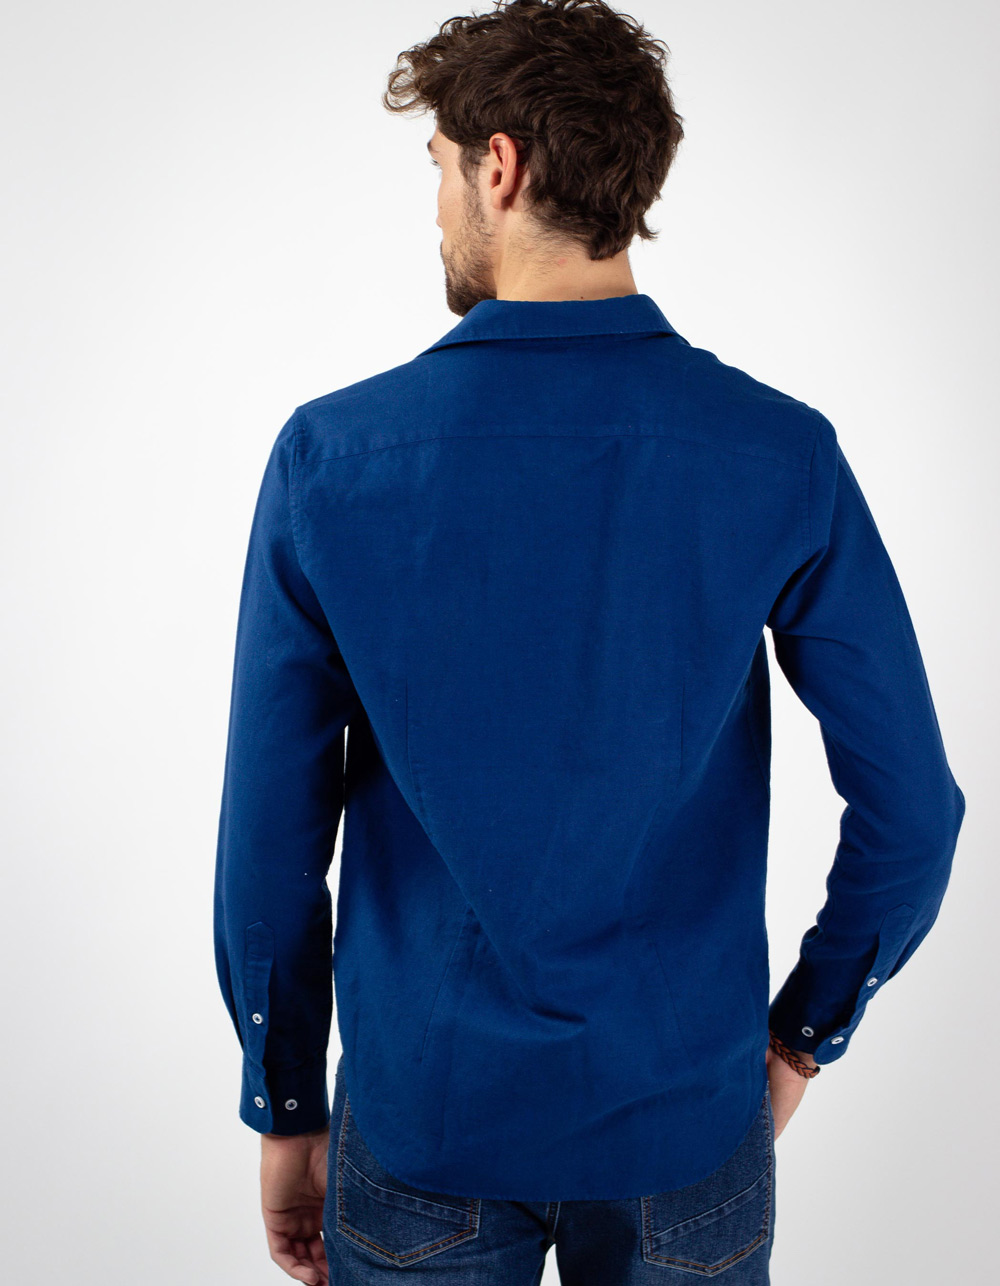 Camisa de lino algodon marino - Backside